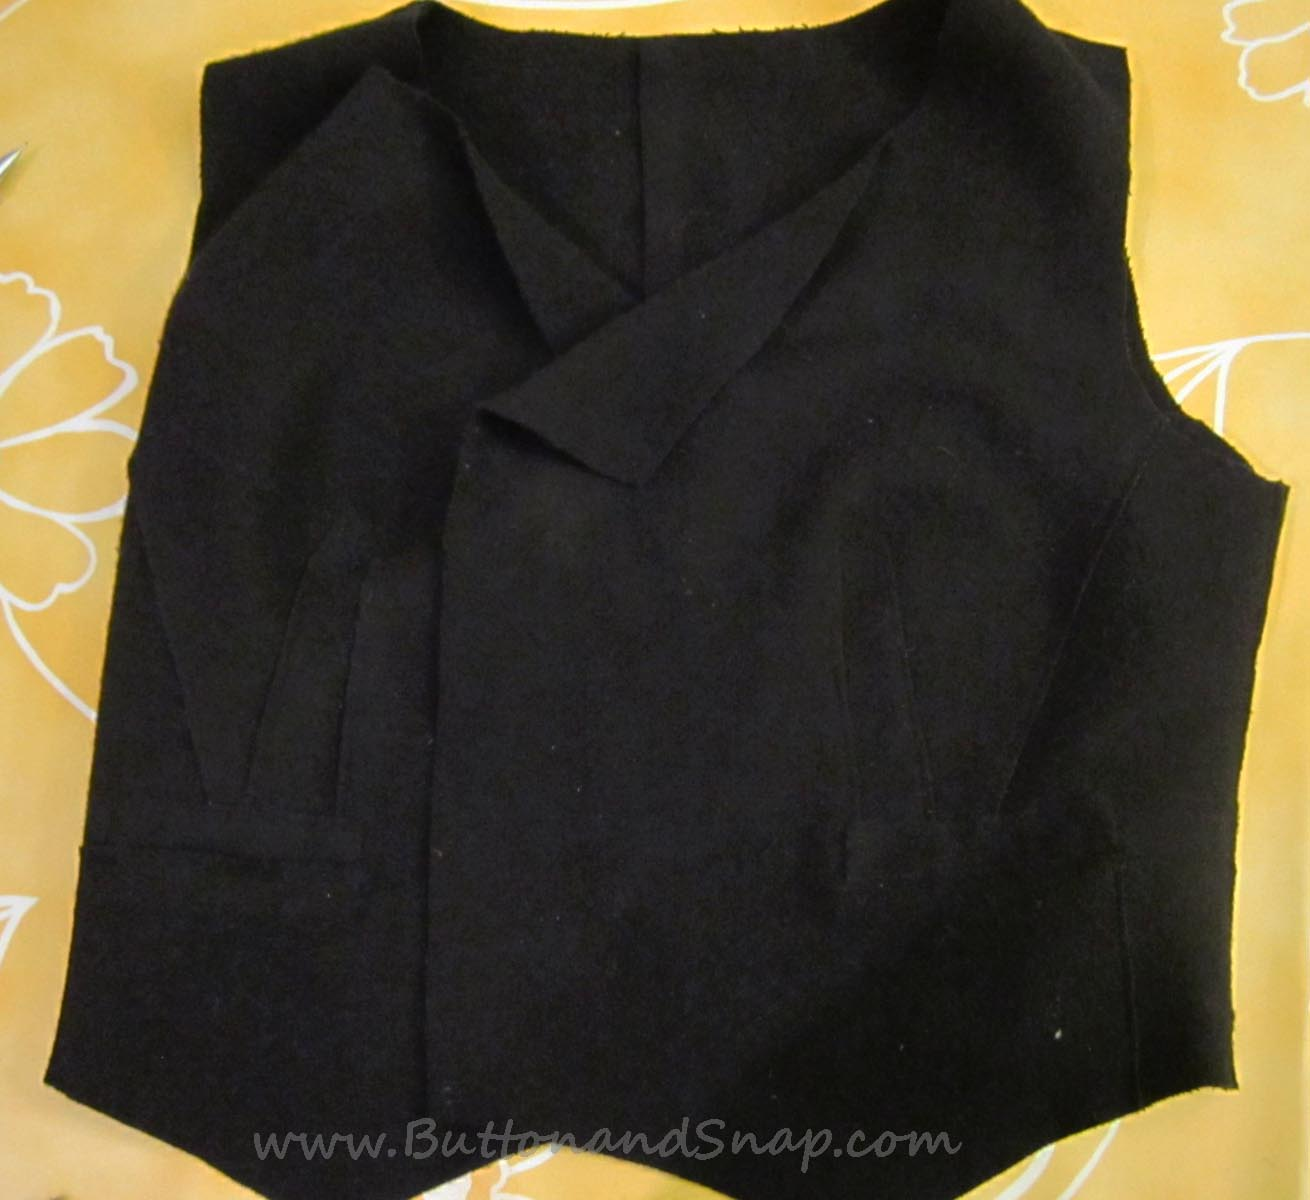 beginning of refashion from old coat to new vest